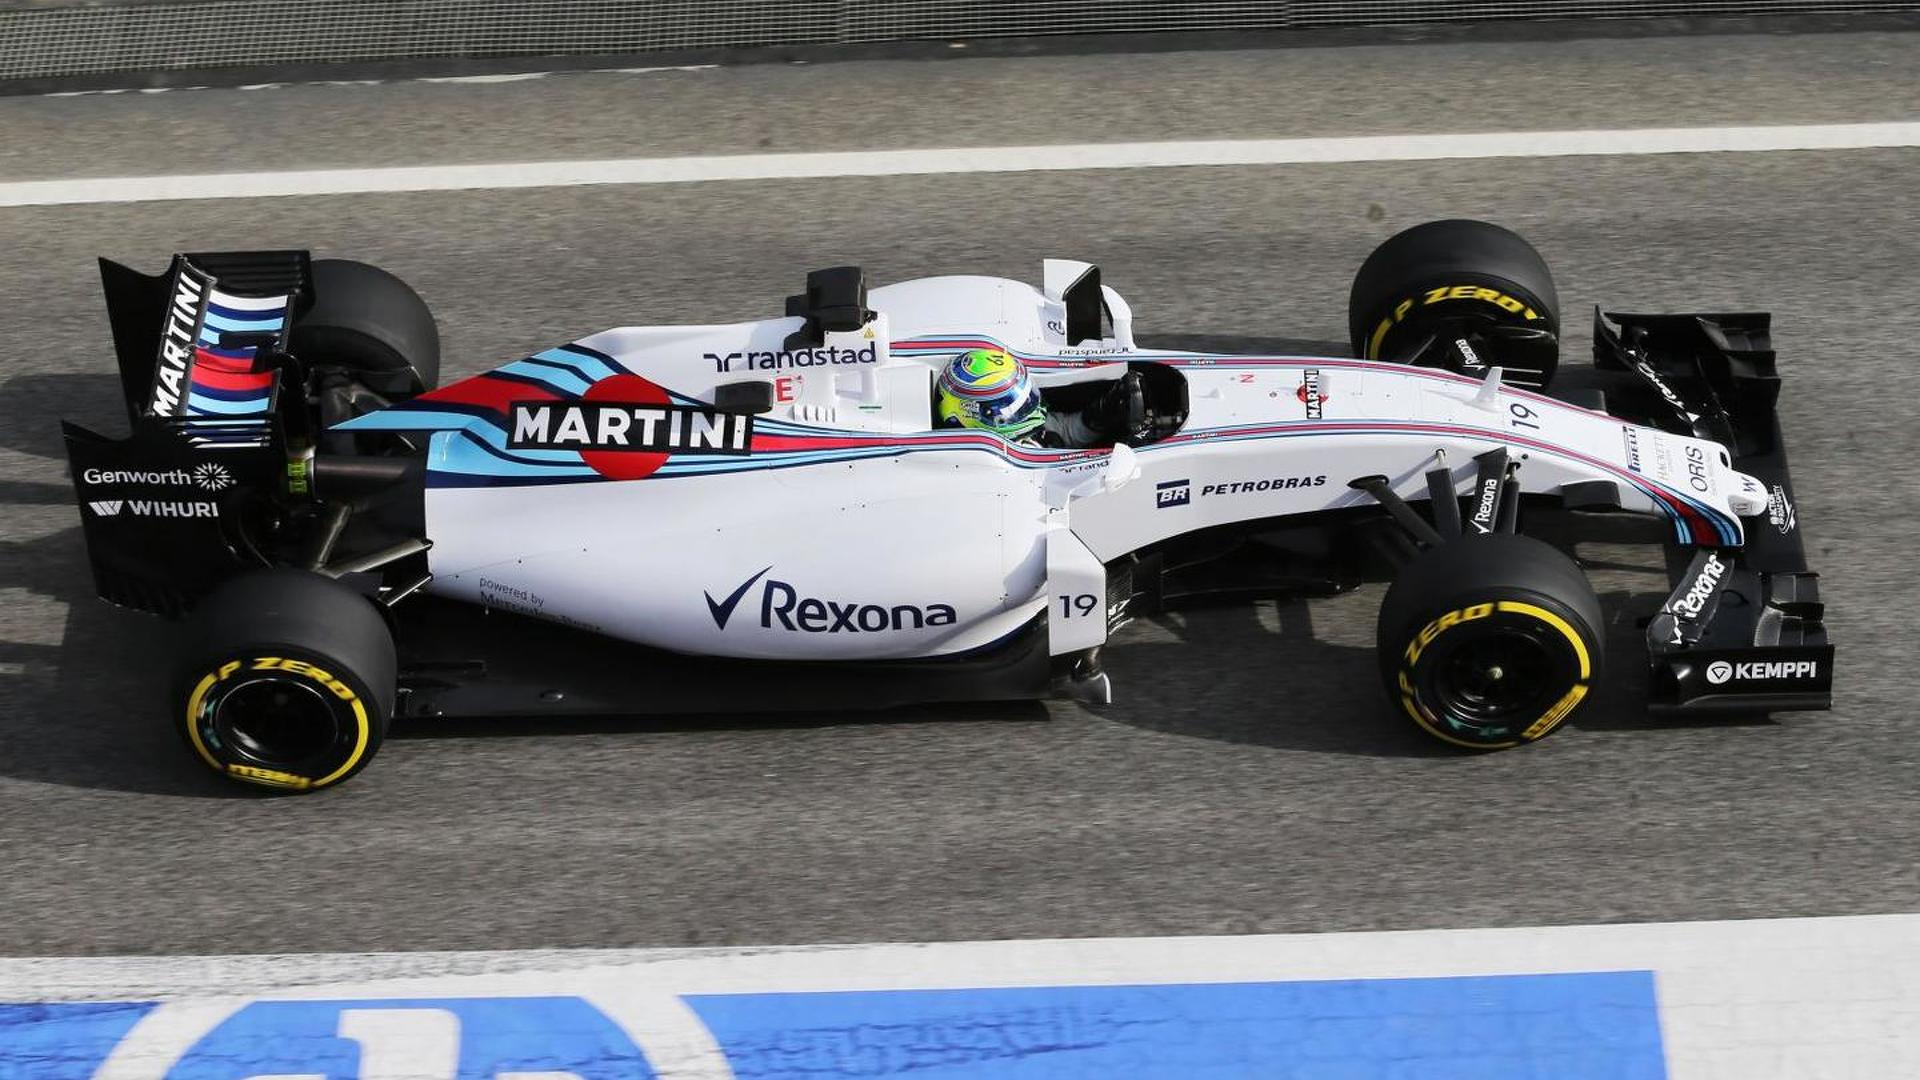 Williams to challenge Mercedes in 2015 - Lauda